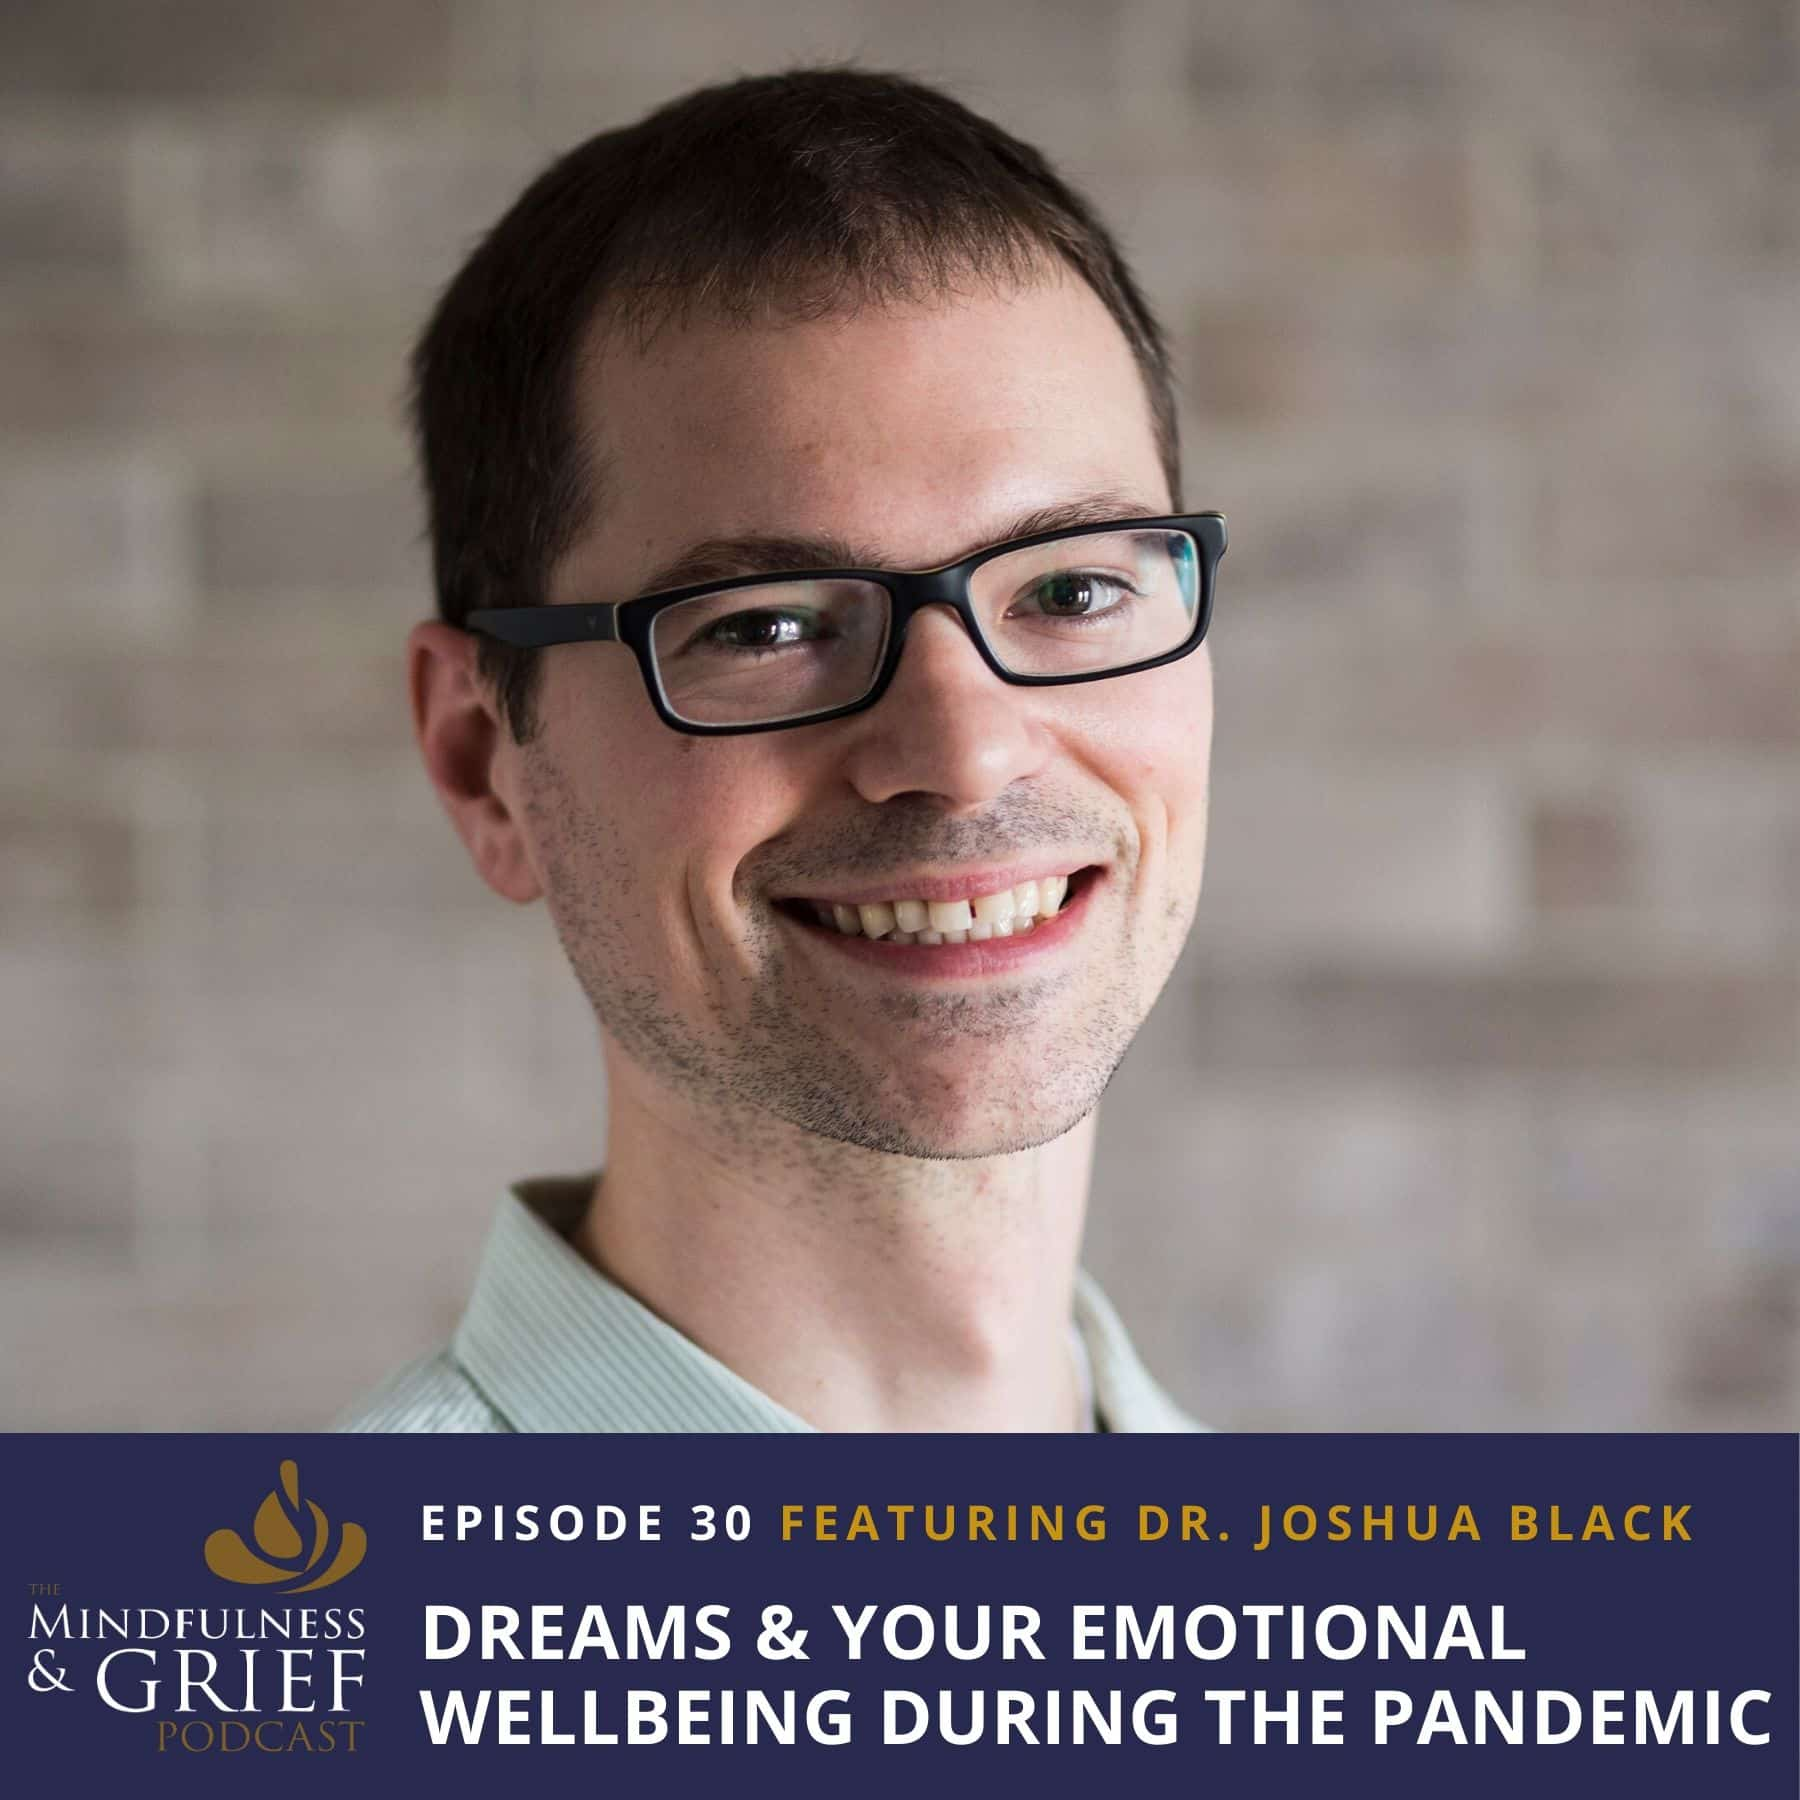 dreams emotional wellbeing covid-19 pandemic joshua black